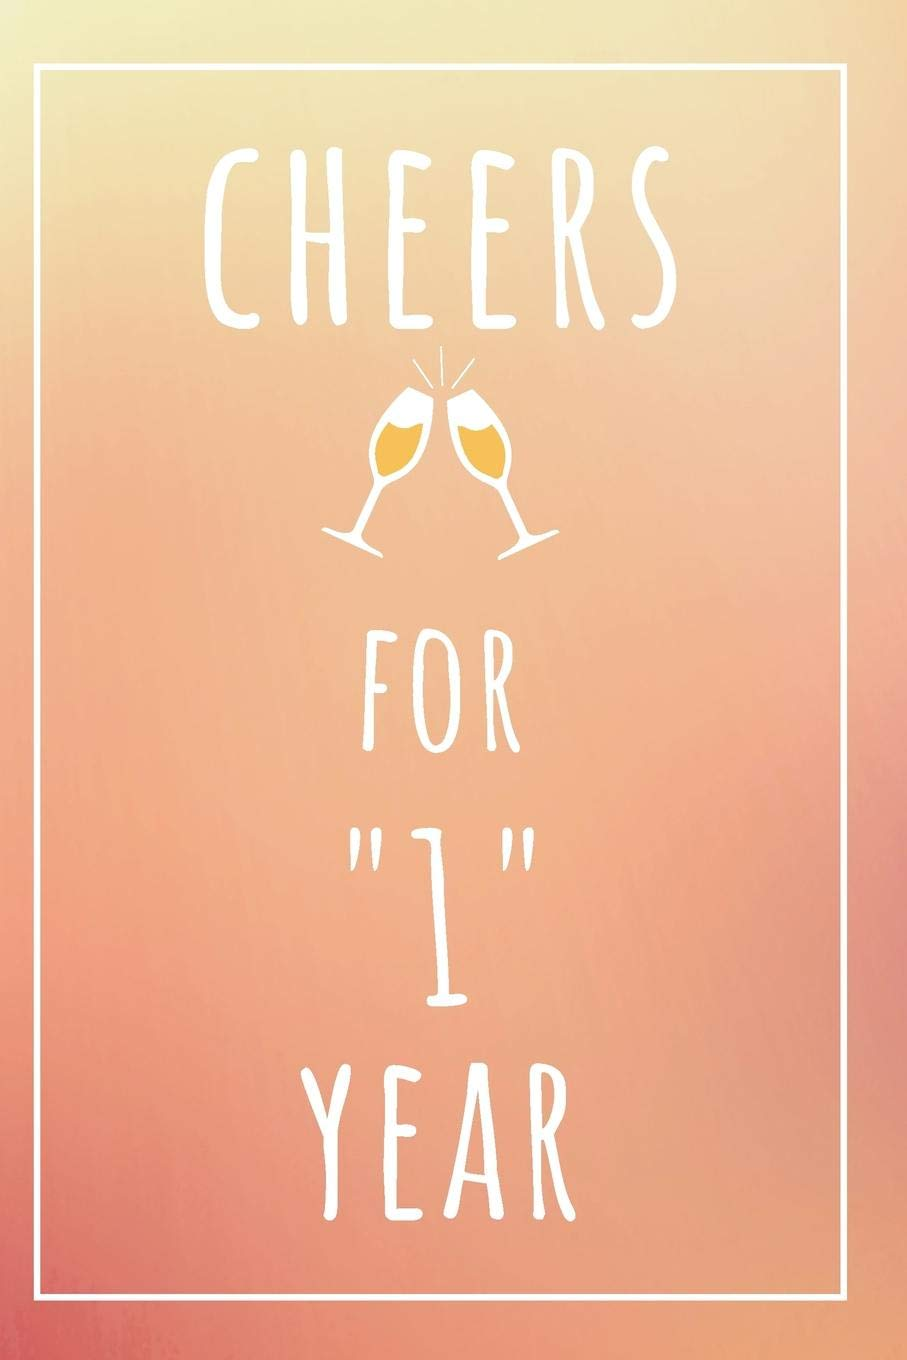 Cheers For 1 Year Notebook 1 Year Anniversary Gifts For